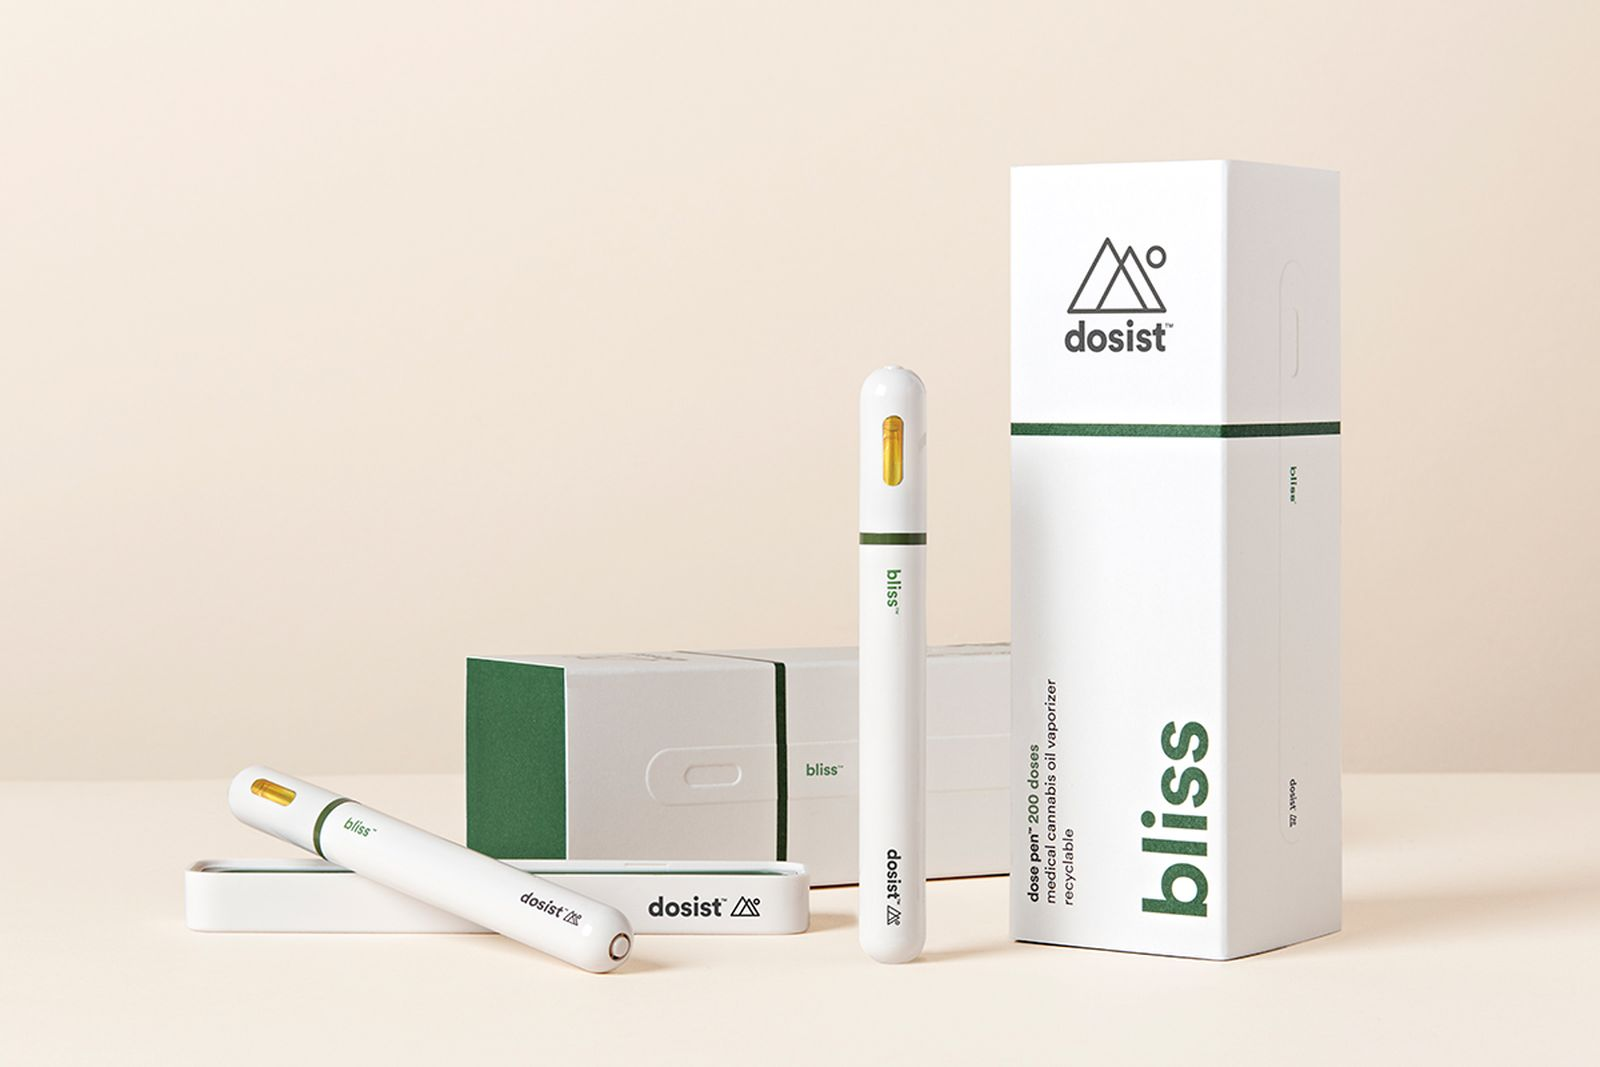 sdosist apple of cannabis weed main